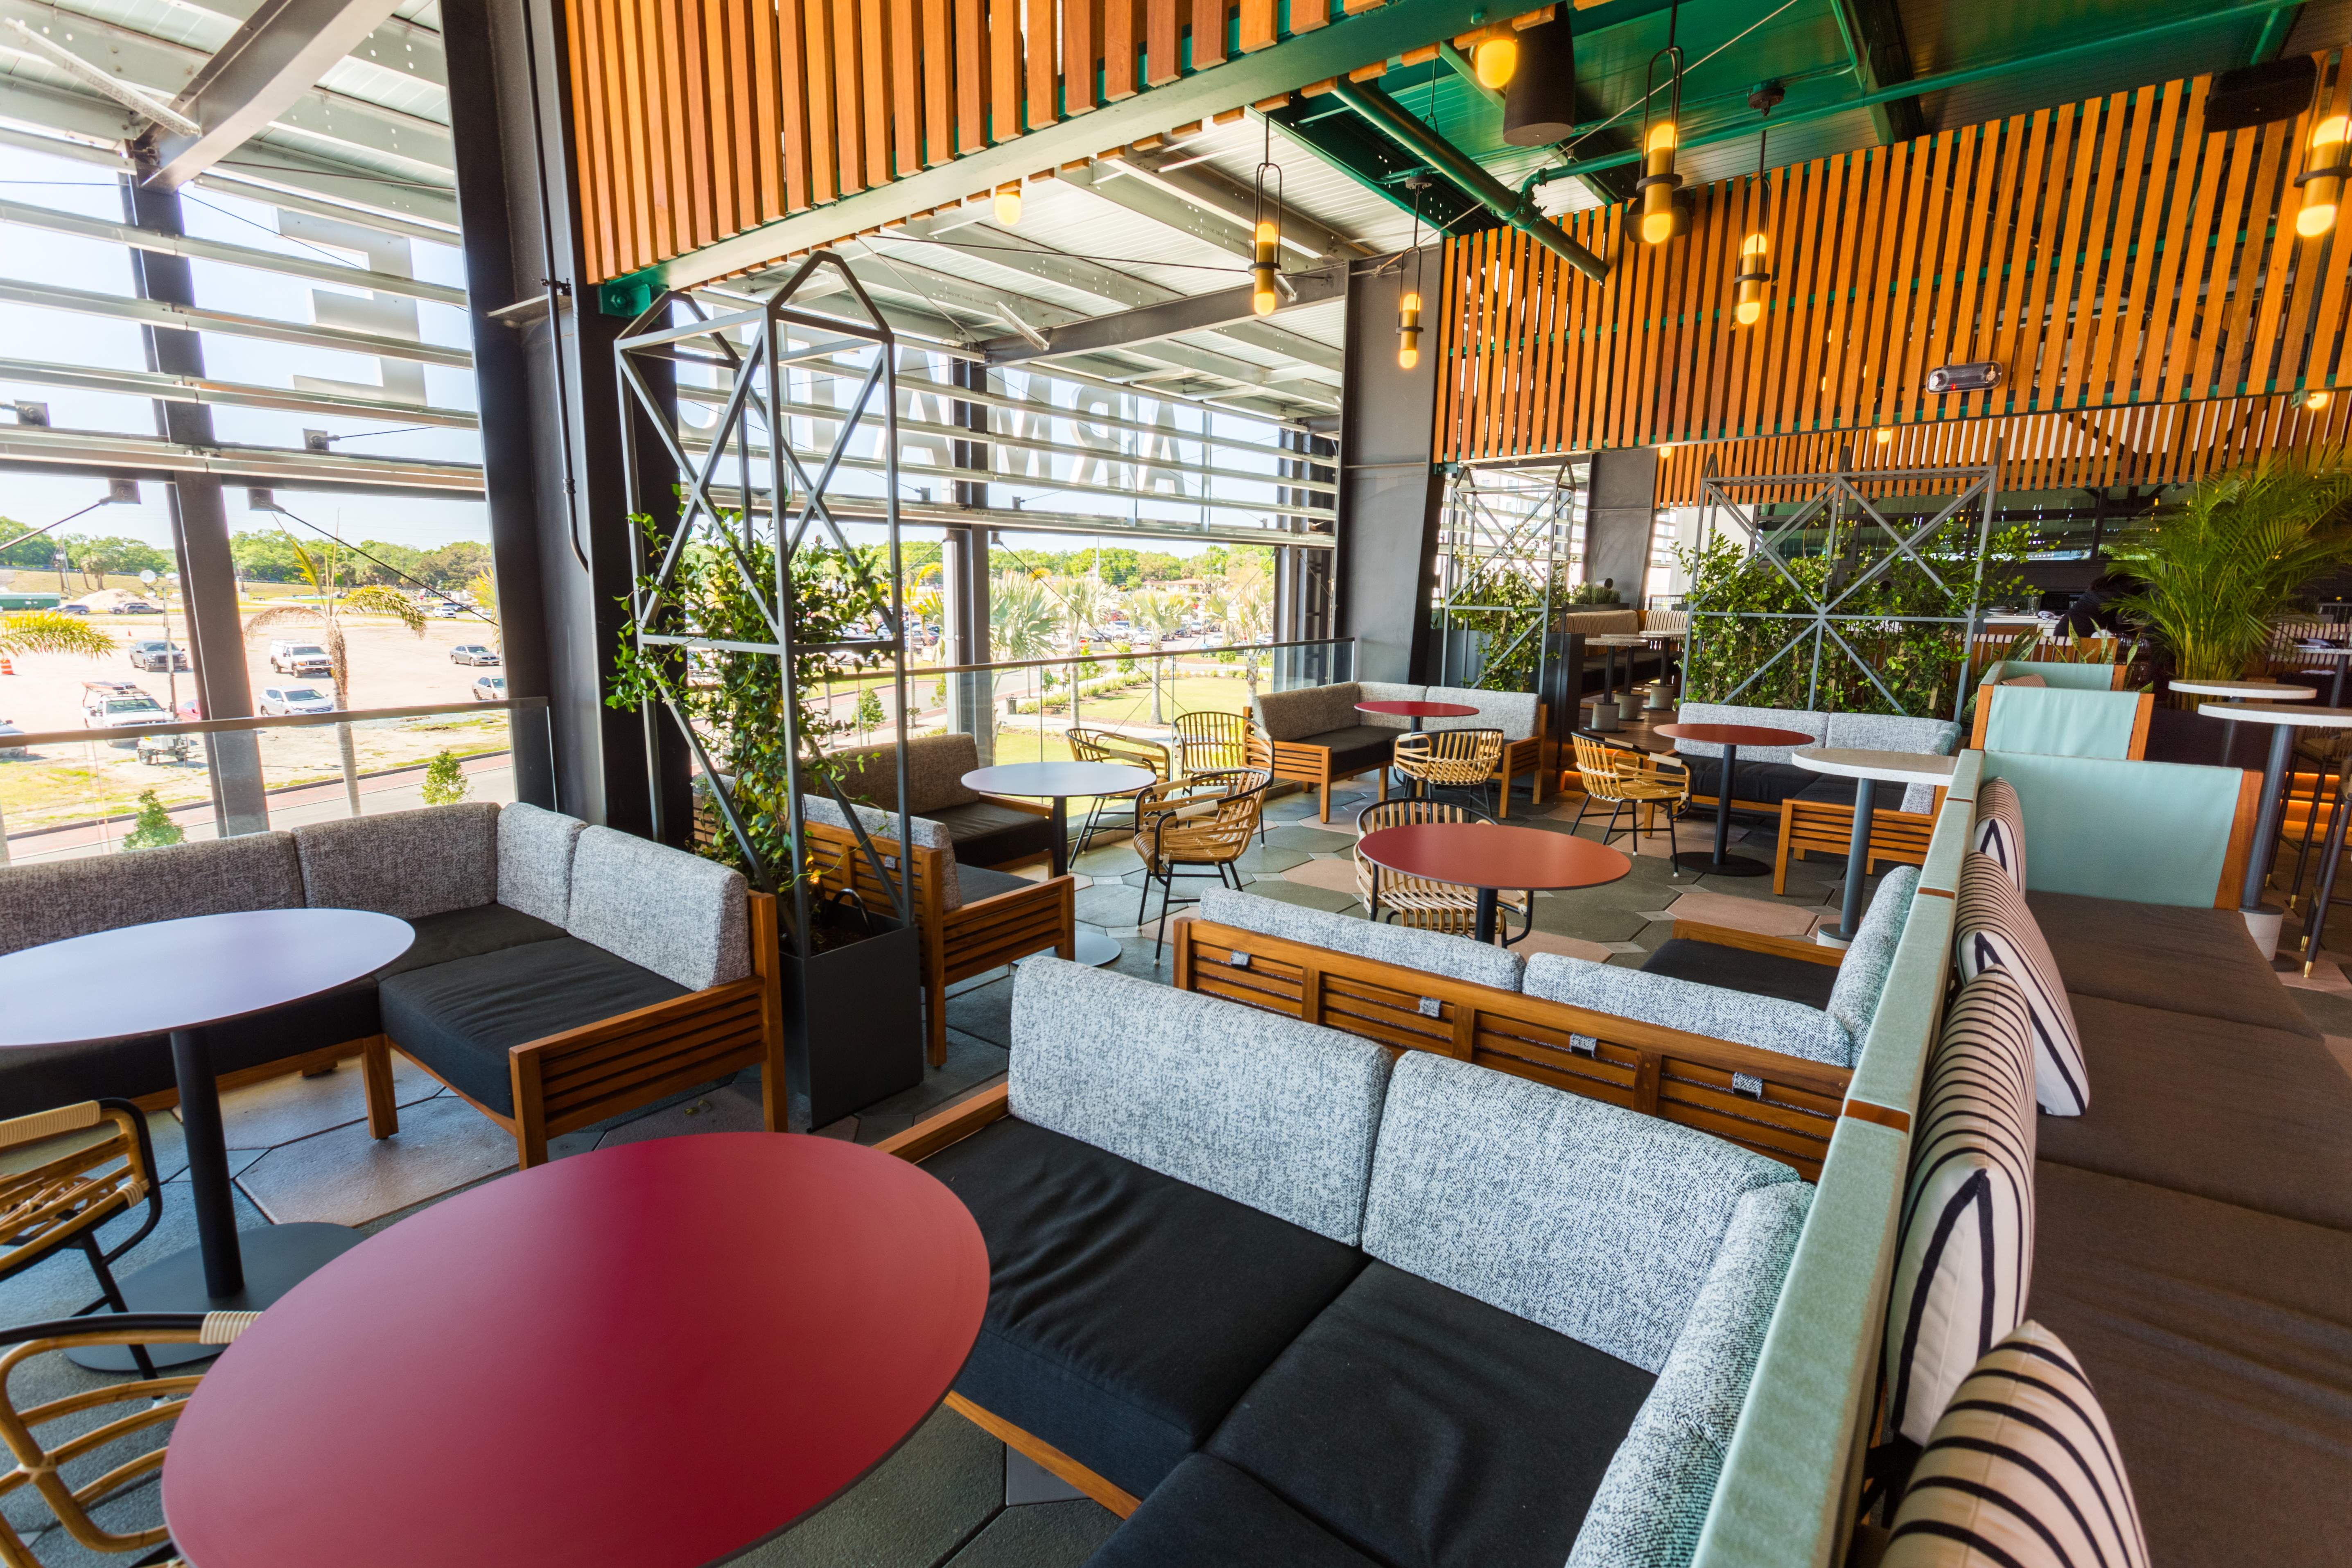 Armature Works rooftop bar M Bird is now open in Tampa Heights